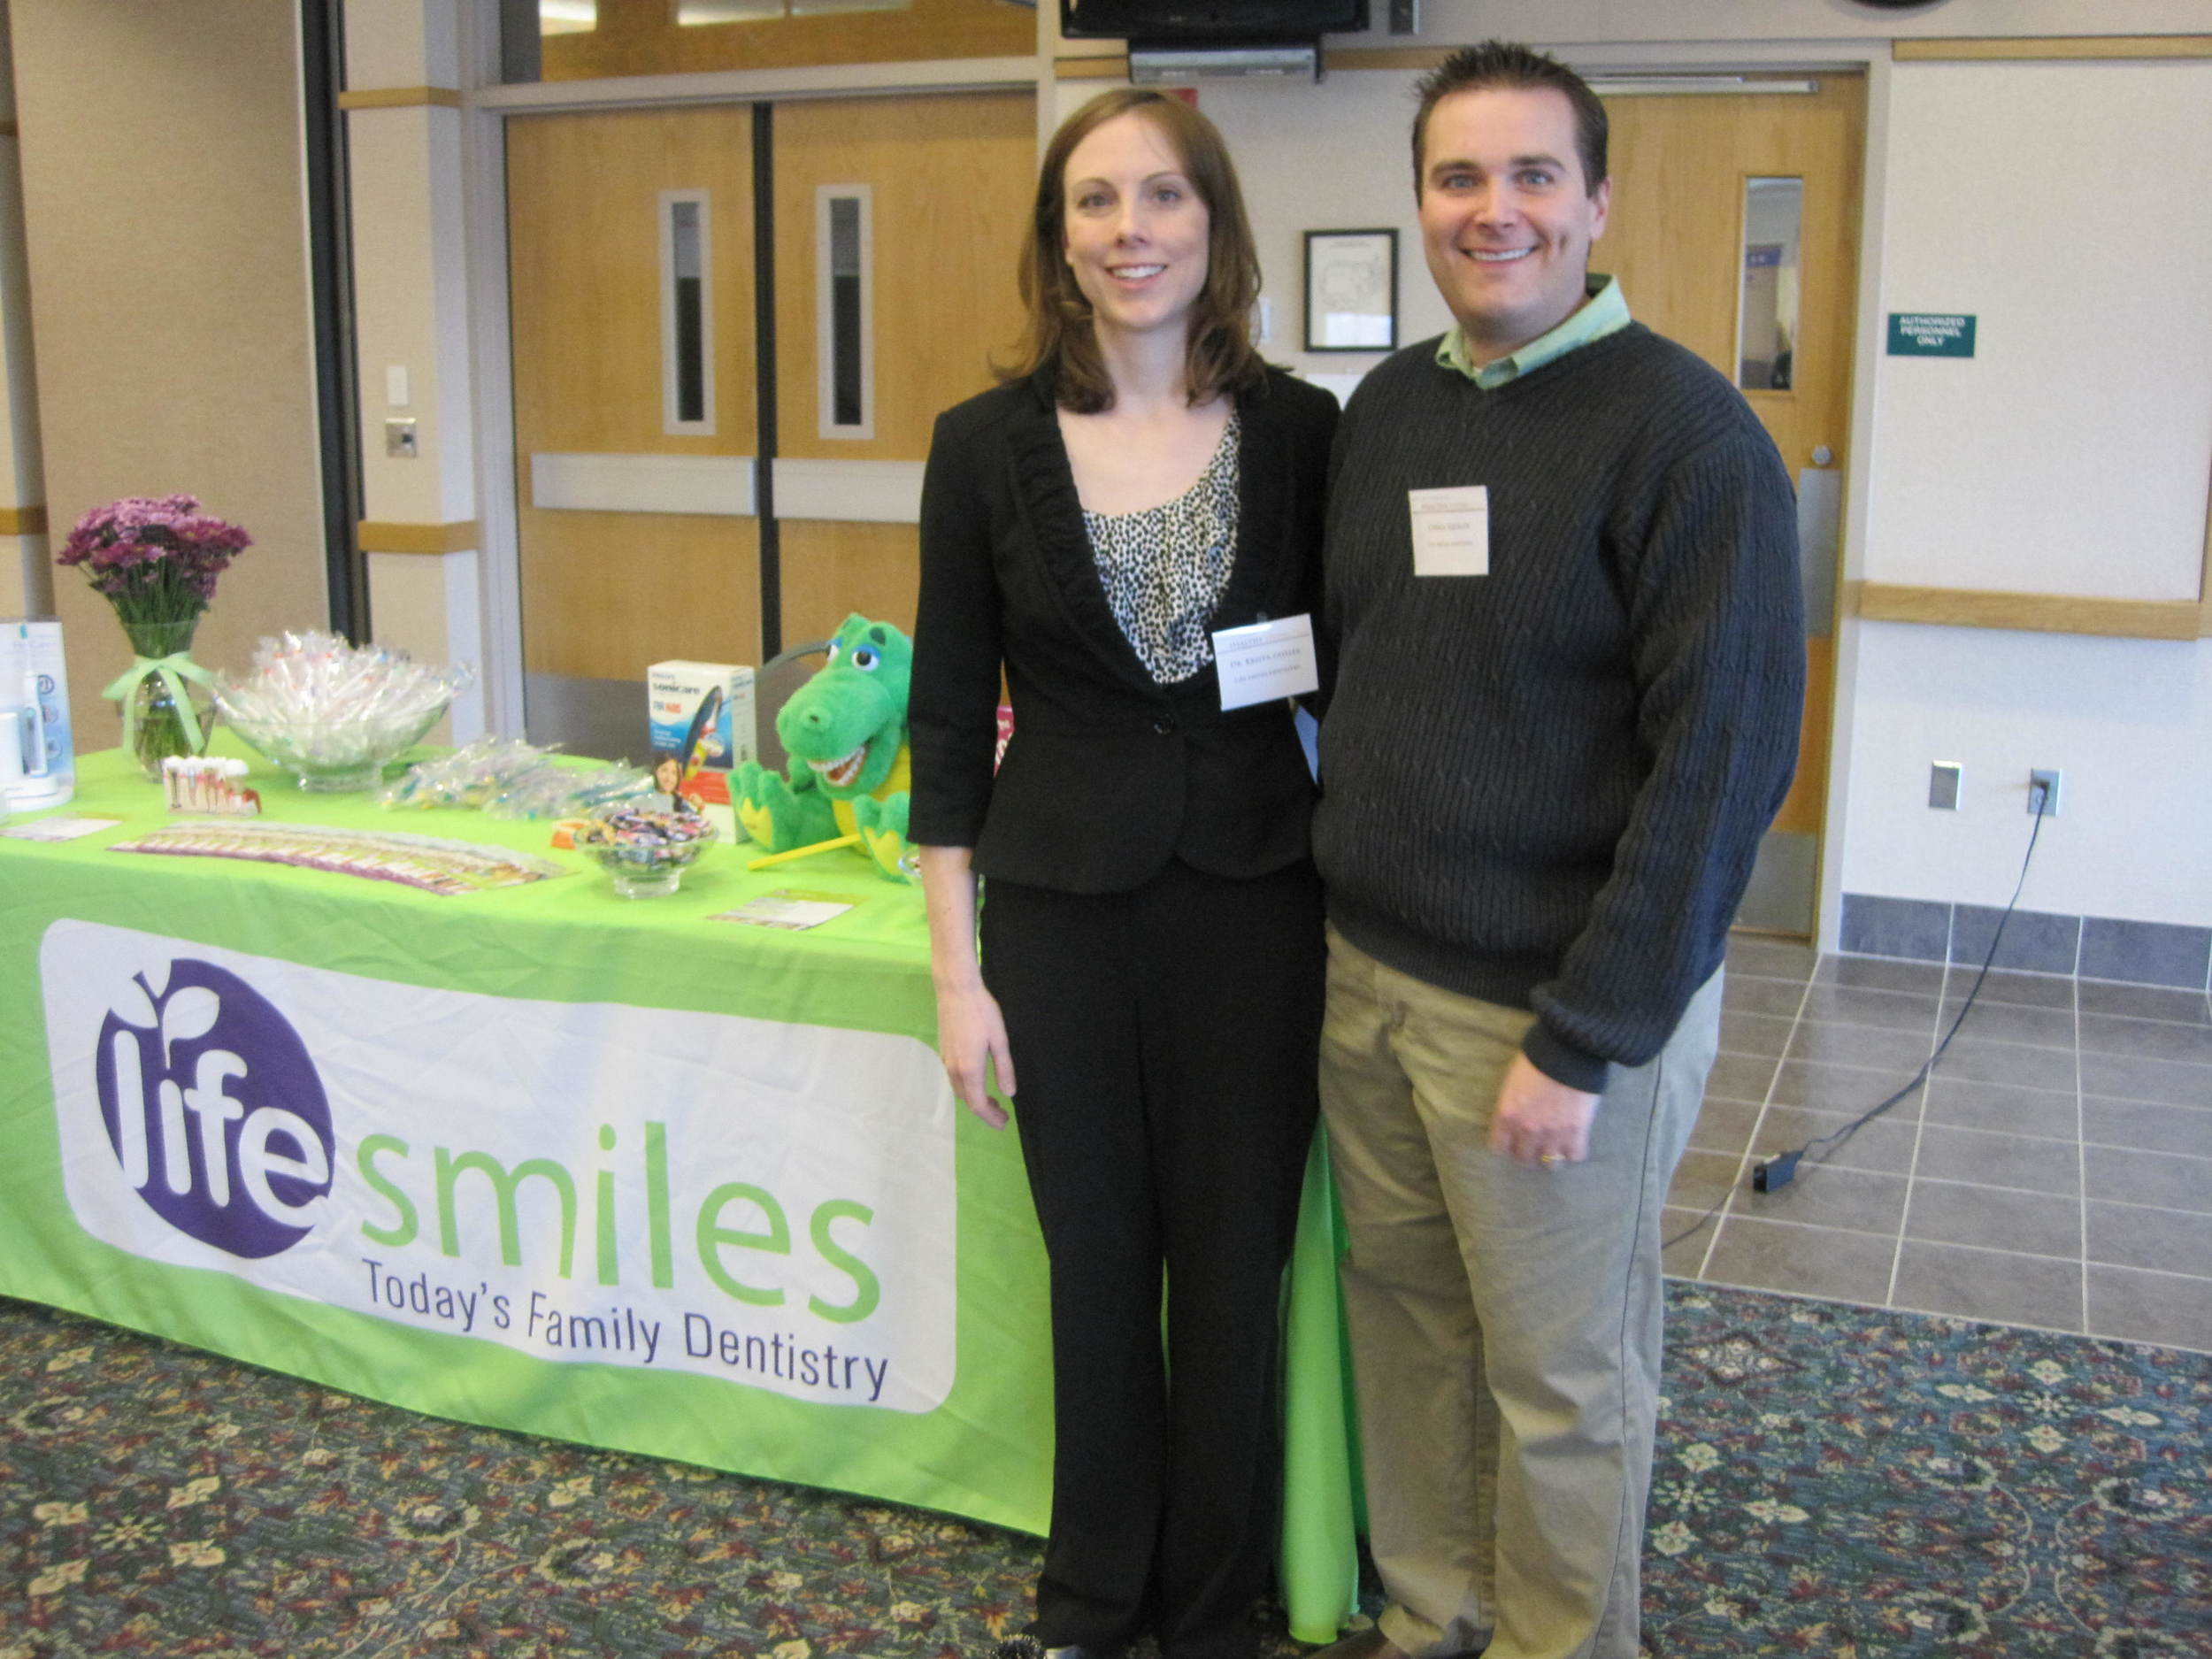 Dr. Geisler at Healthy Living Fair in Plymouth, MN